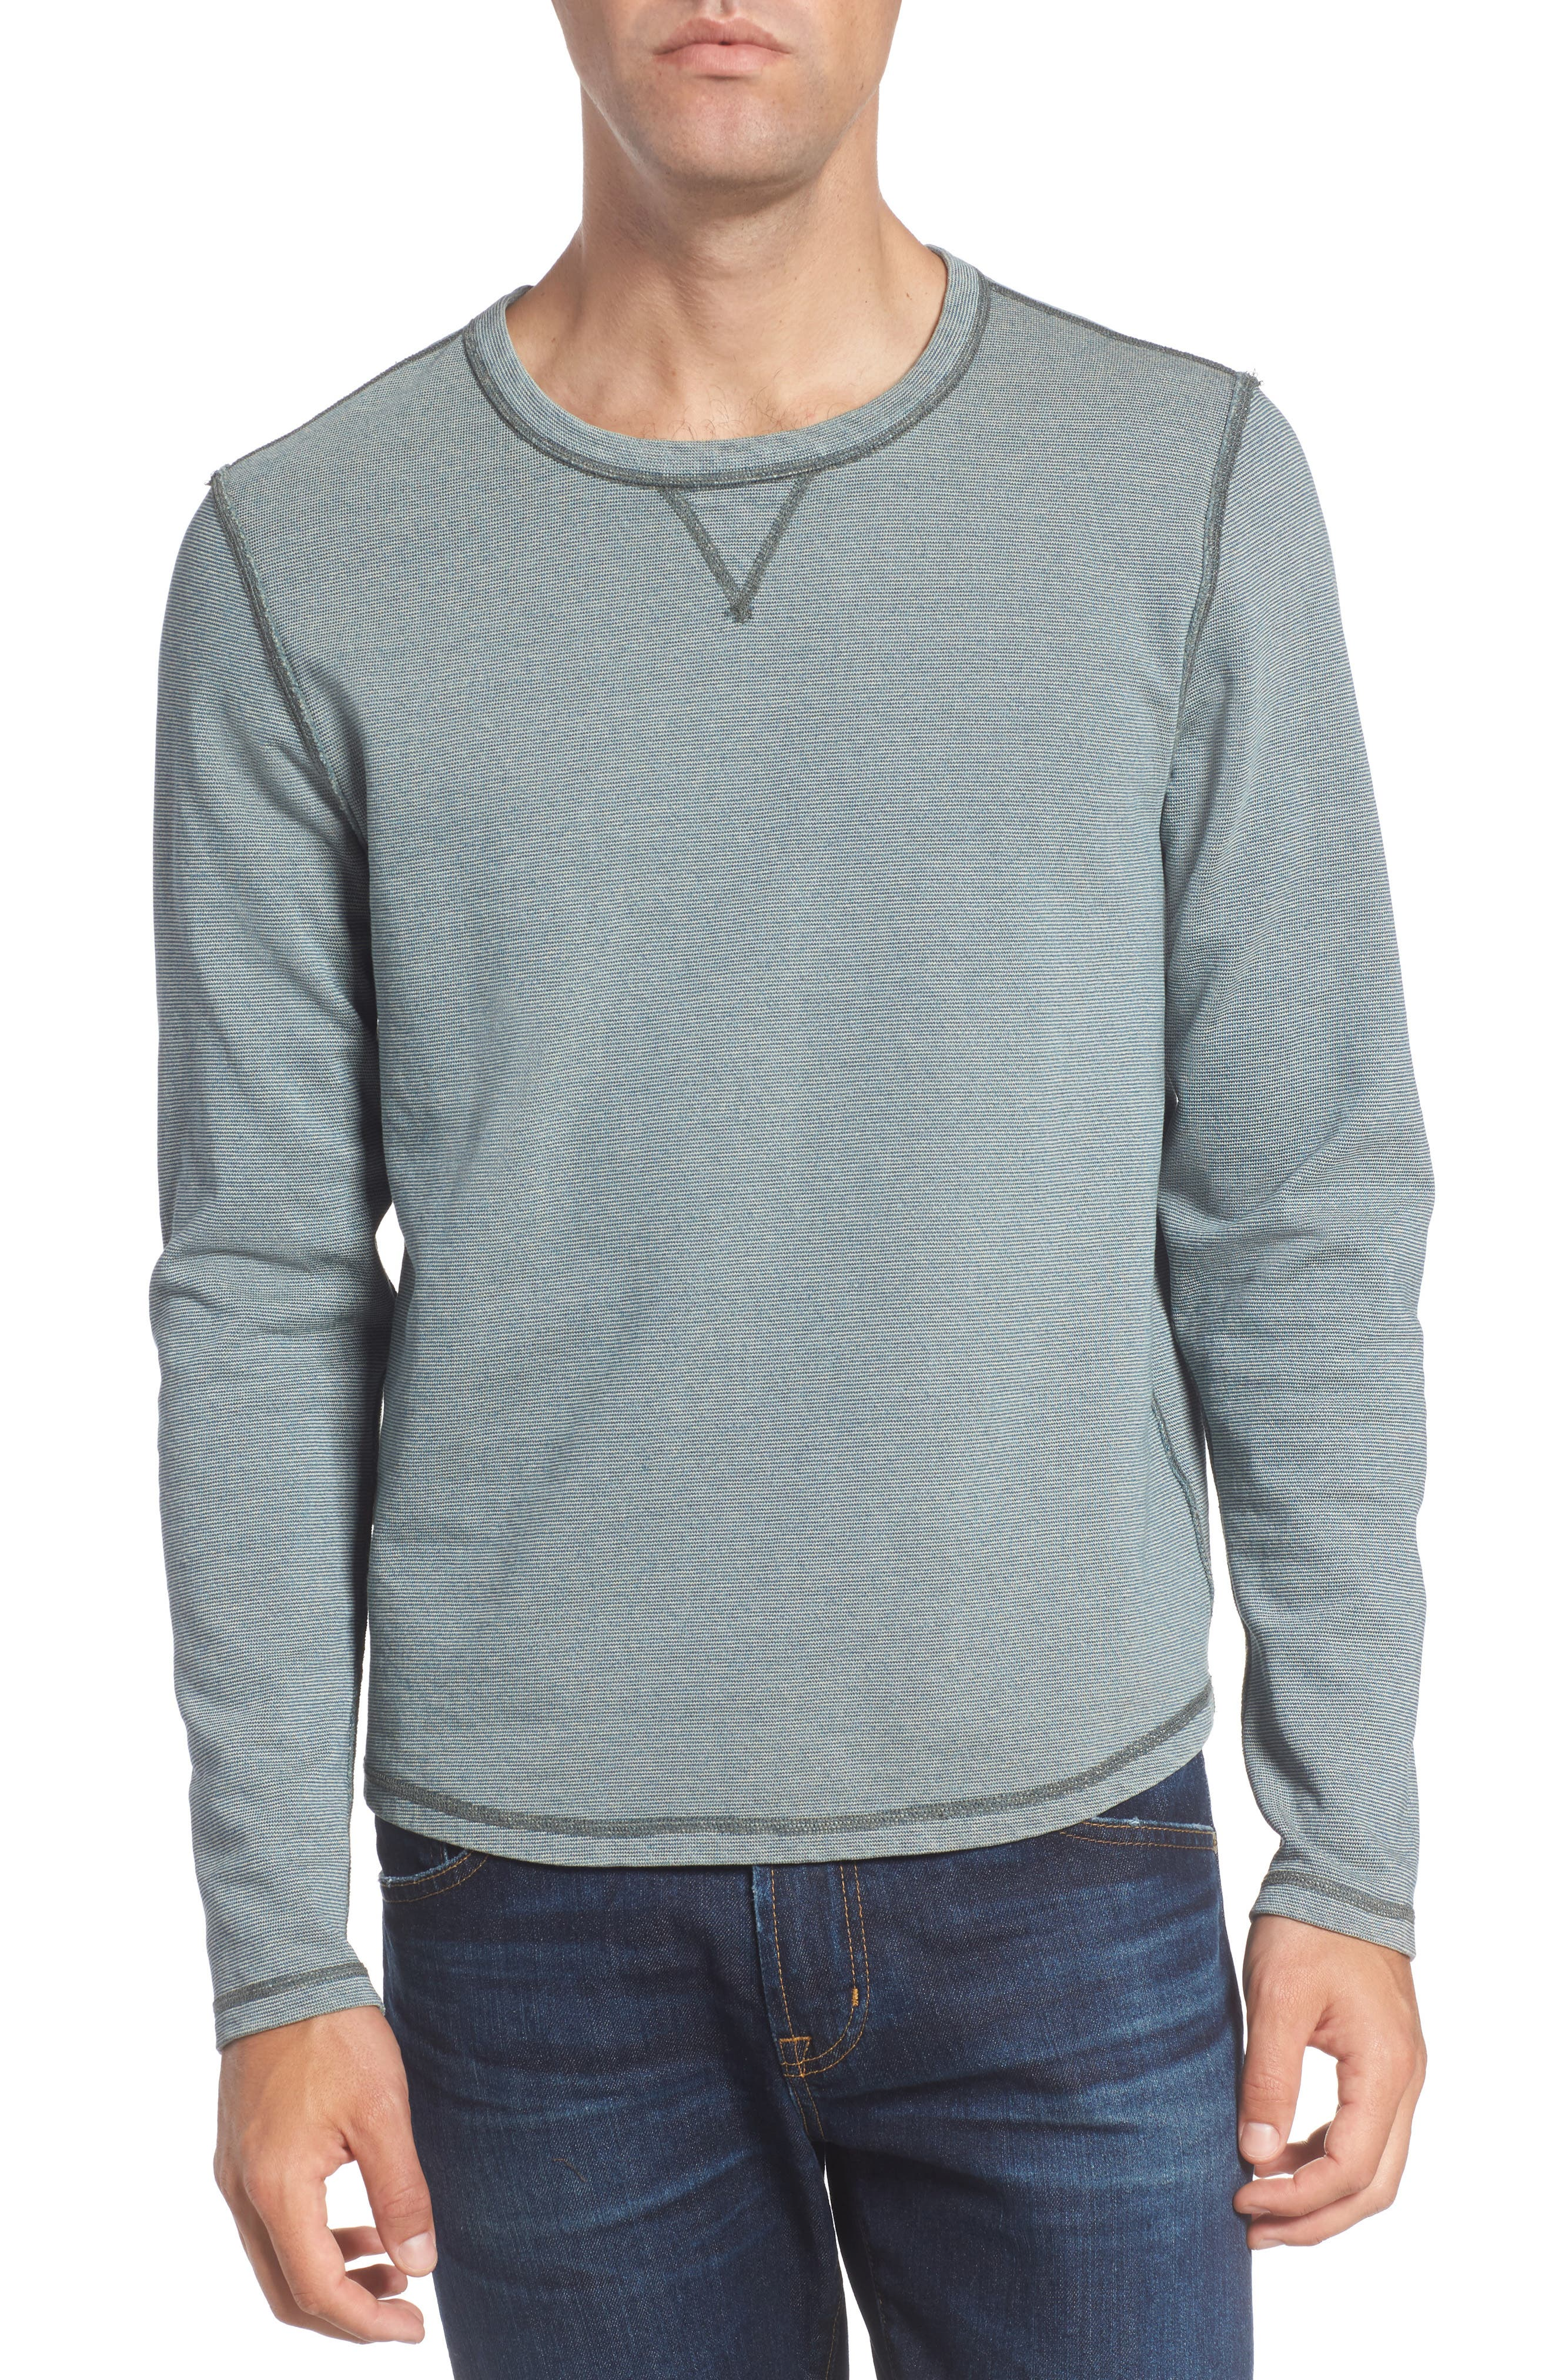 Strickland Reversible Crewneck Sweatshirt,                             Alternate thumbnail 4, color,                             424